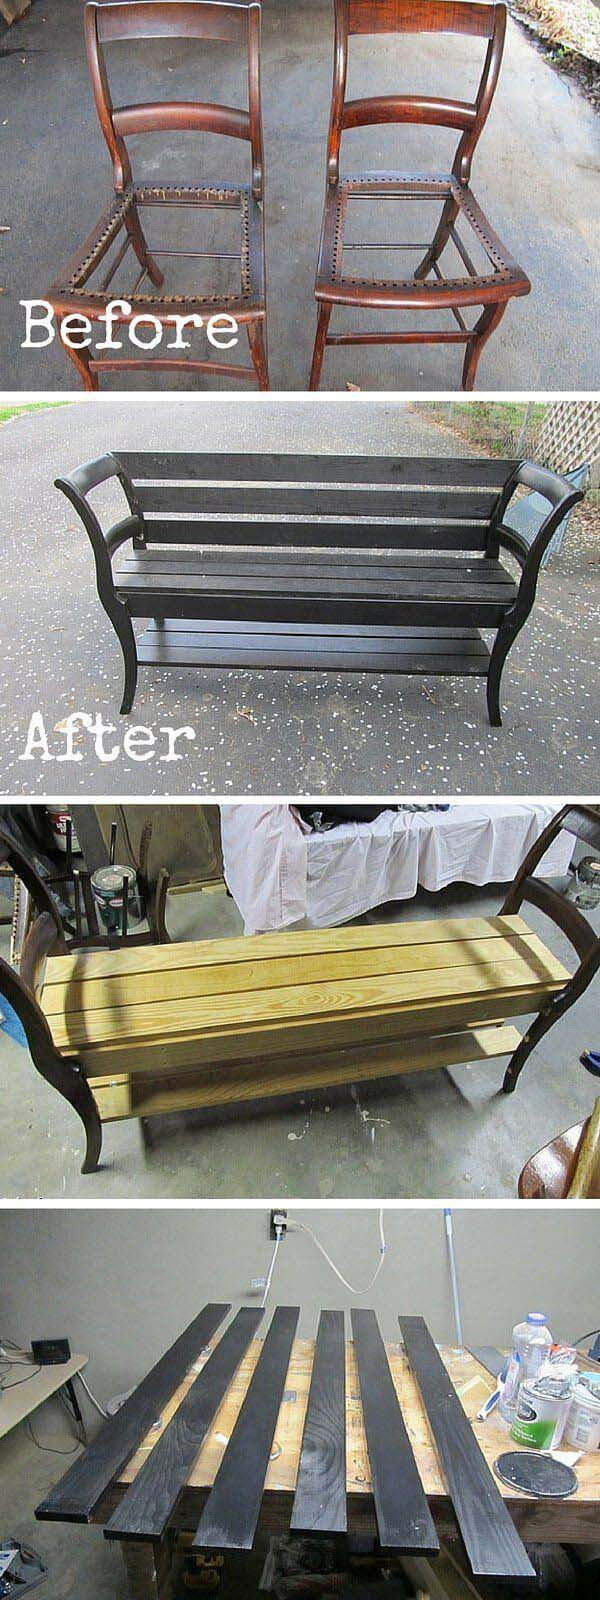 Bench Created Using Repurposed Old Chairs #chair #diy #repurposed #decorhomeideas